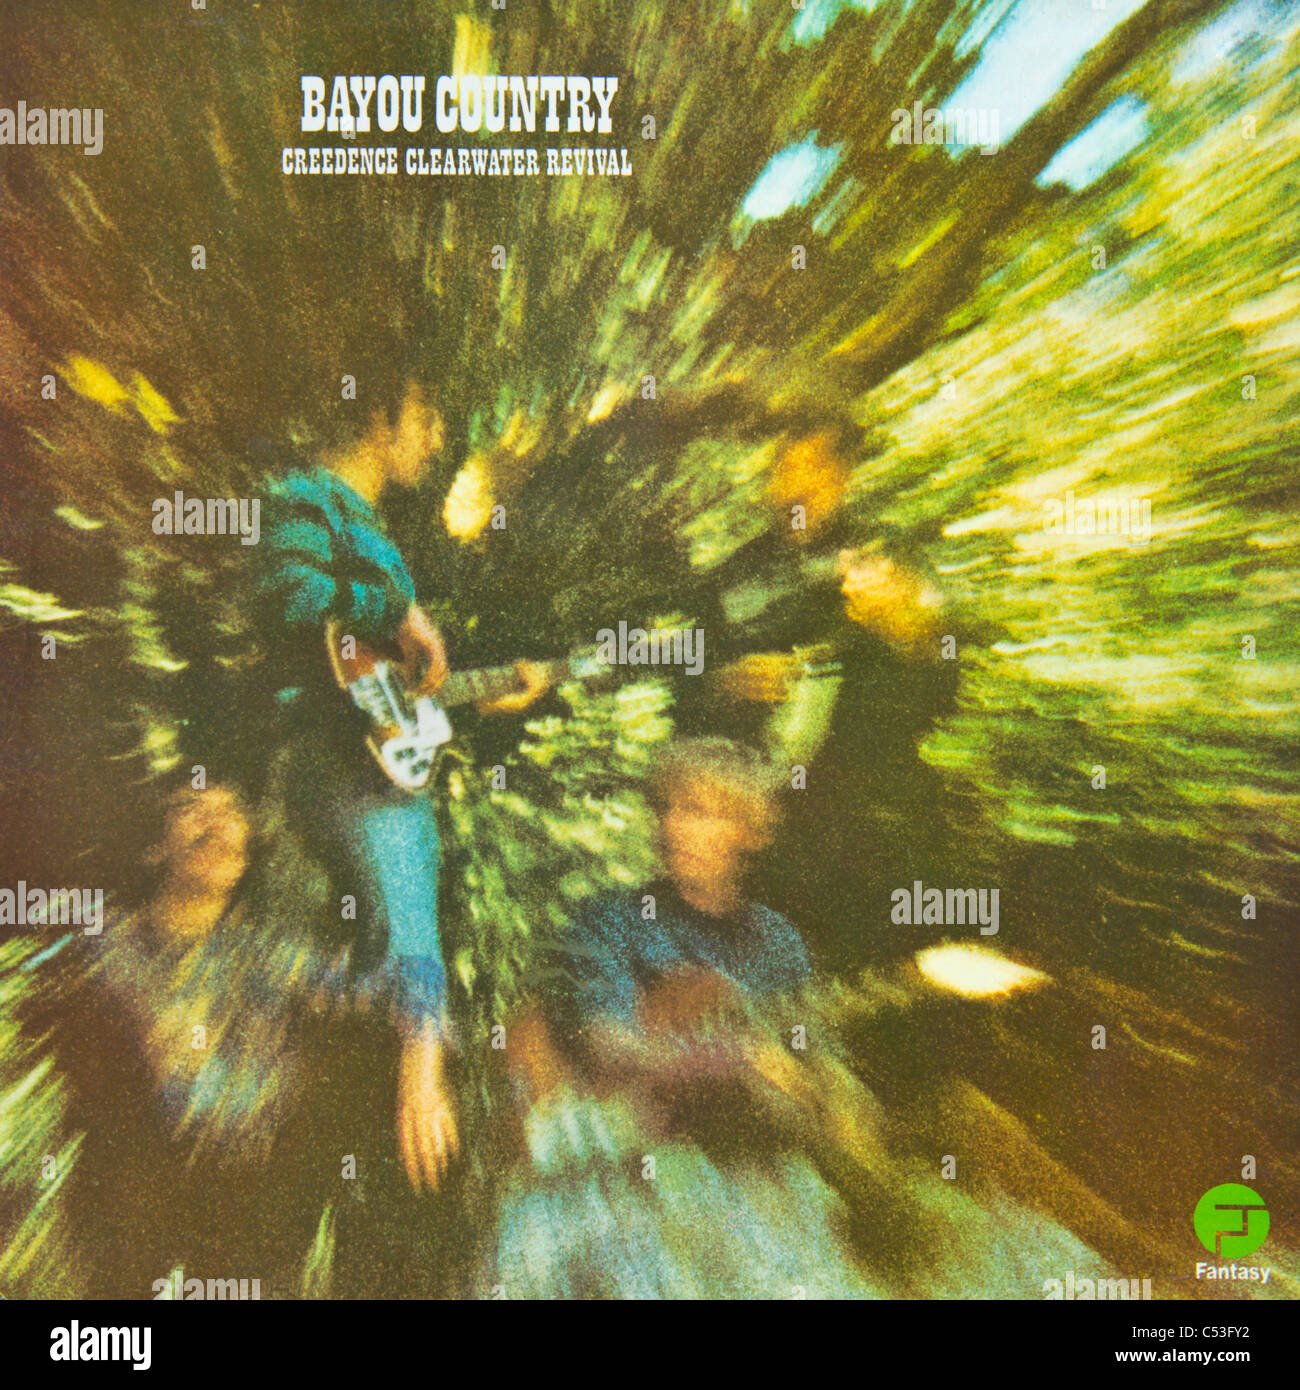 cover of original vinyl album bayou country by creedence. Black Bedroom Furniture Sets. Home Design Ideas